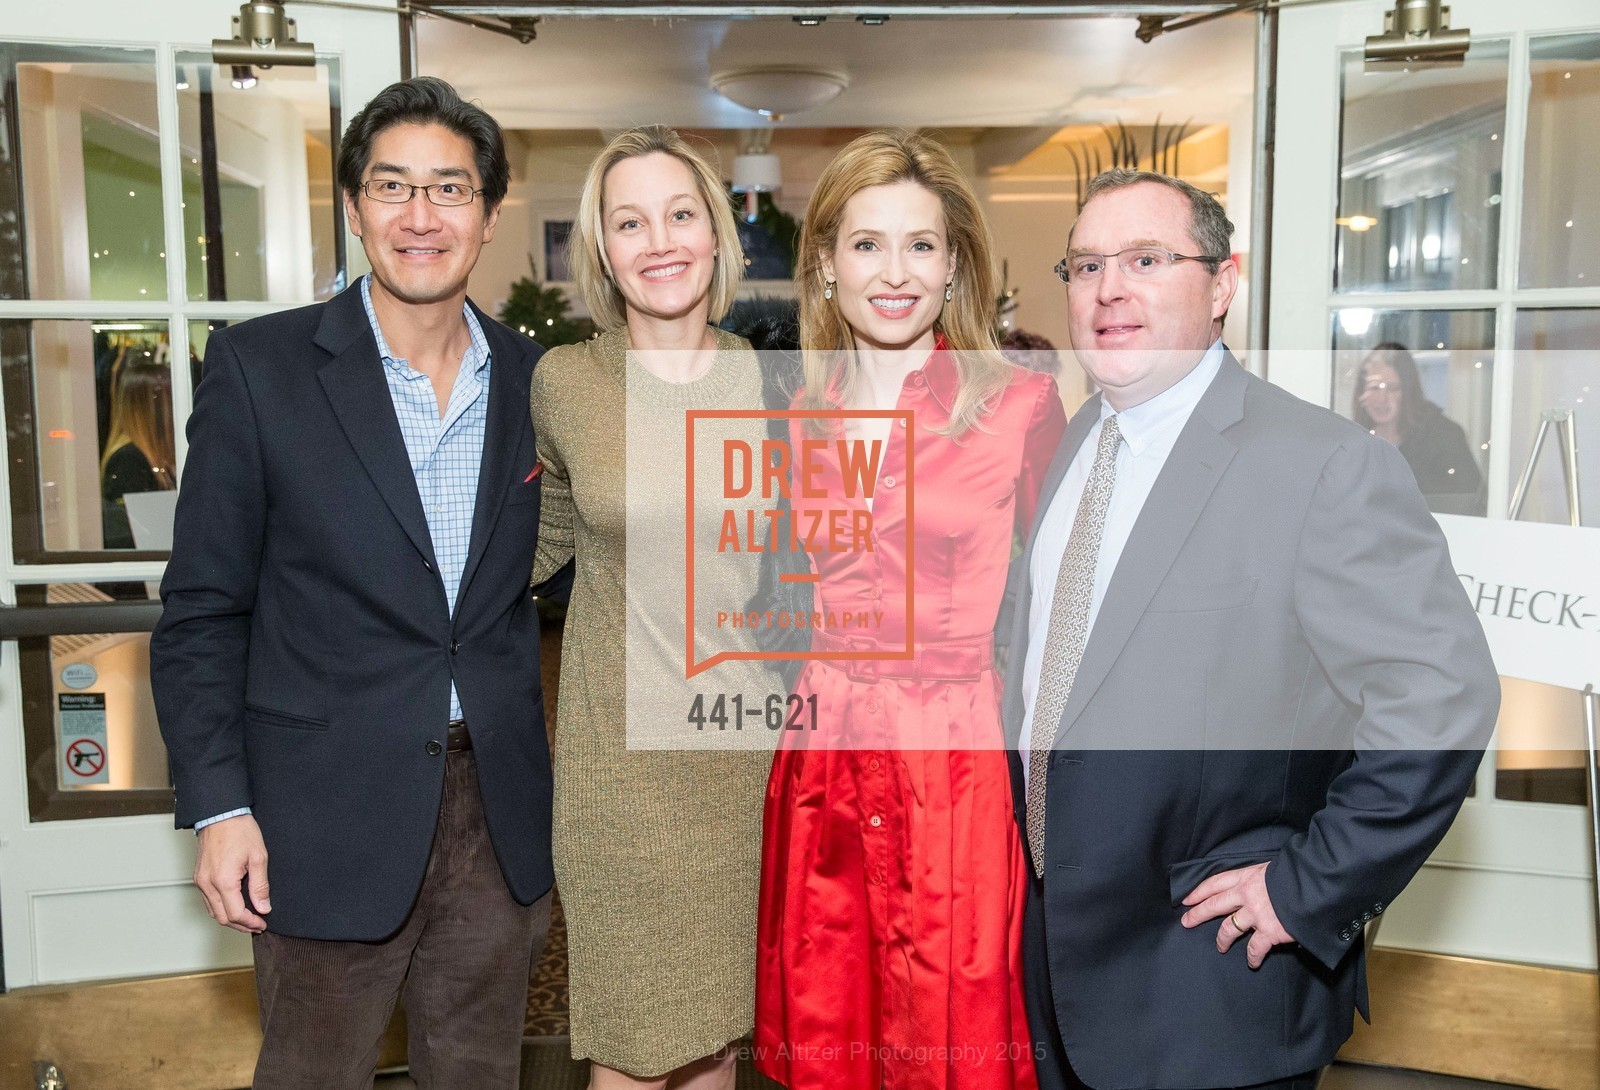 David Chung, Erin Glenn, Kate Harbin, Children of Shelters' Jingle and Mingle, Golden Gate Club. 135 Fisher Loop, December 3rd, 2015,Drew Altizer, Drew Altizer Photography, full-service agency, private events, San Francisco photographer, photographer california